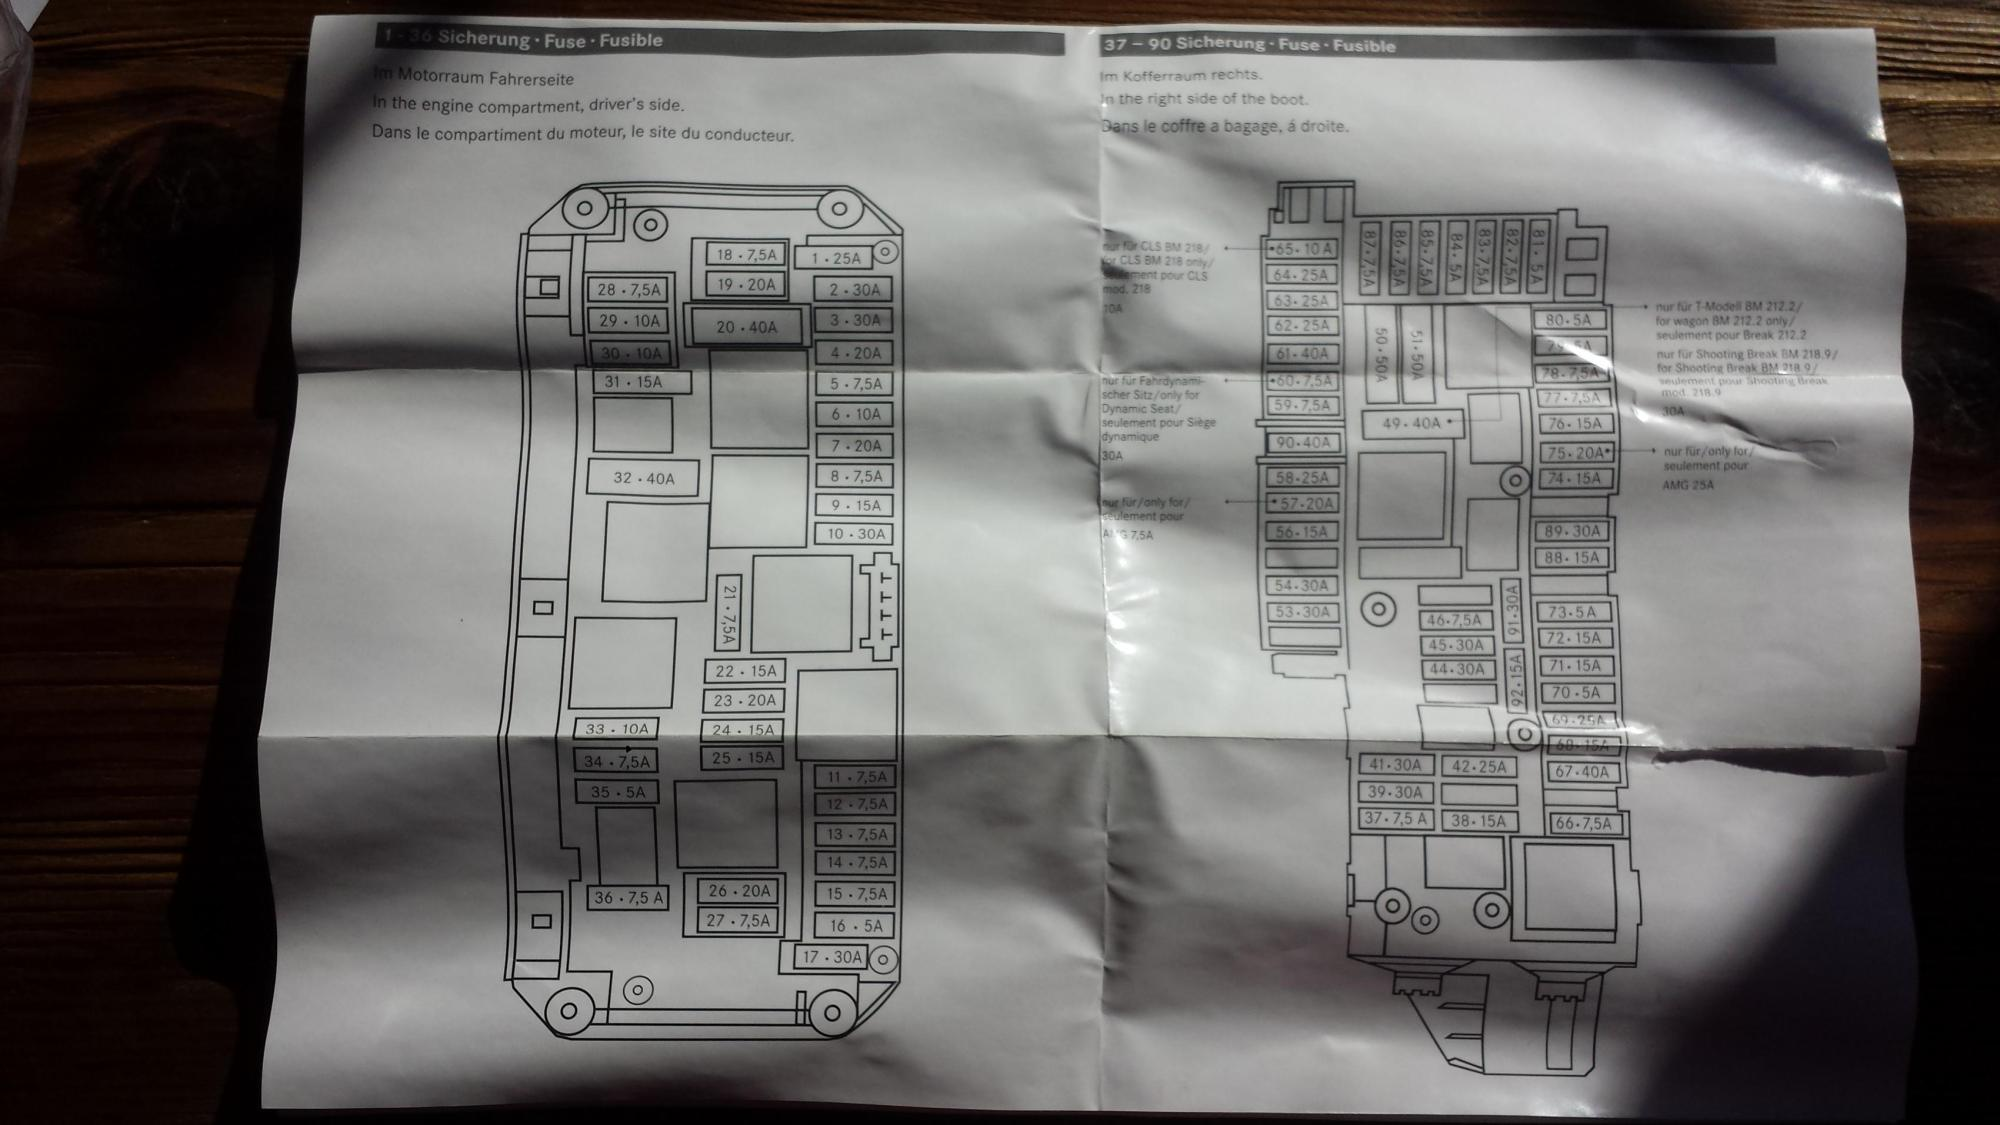 hight resolution of 2013 w212 e350 eclass fuse panel diagram chart 2015 04 26